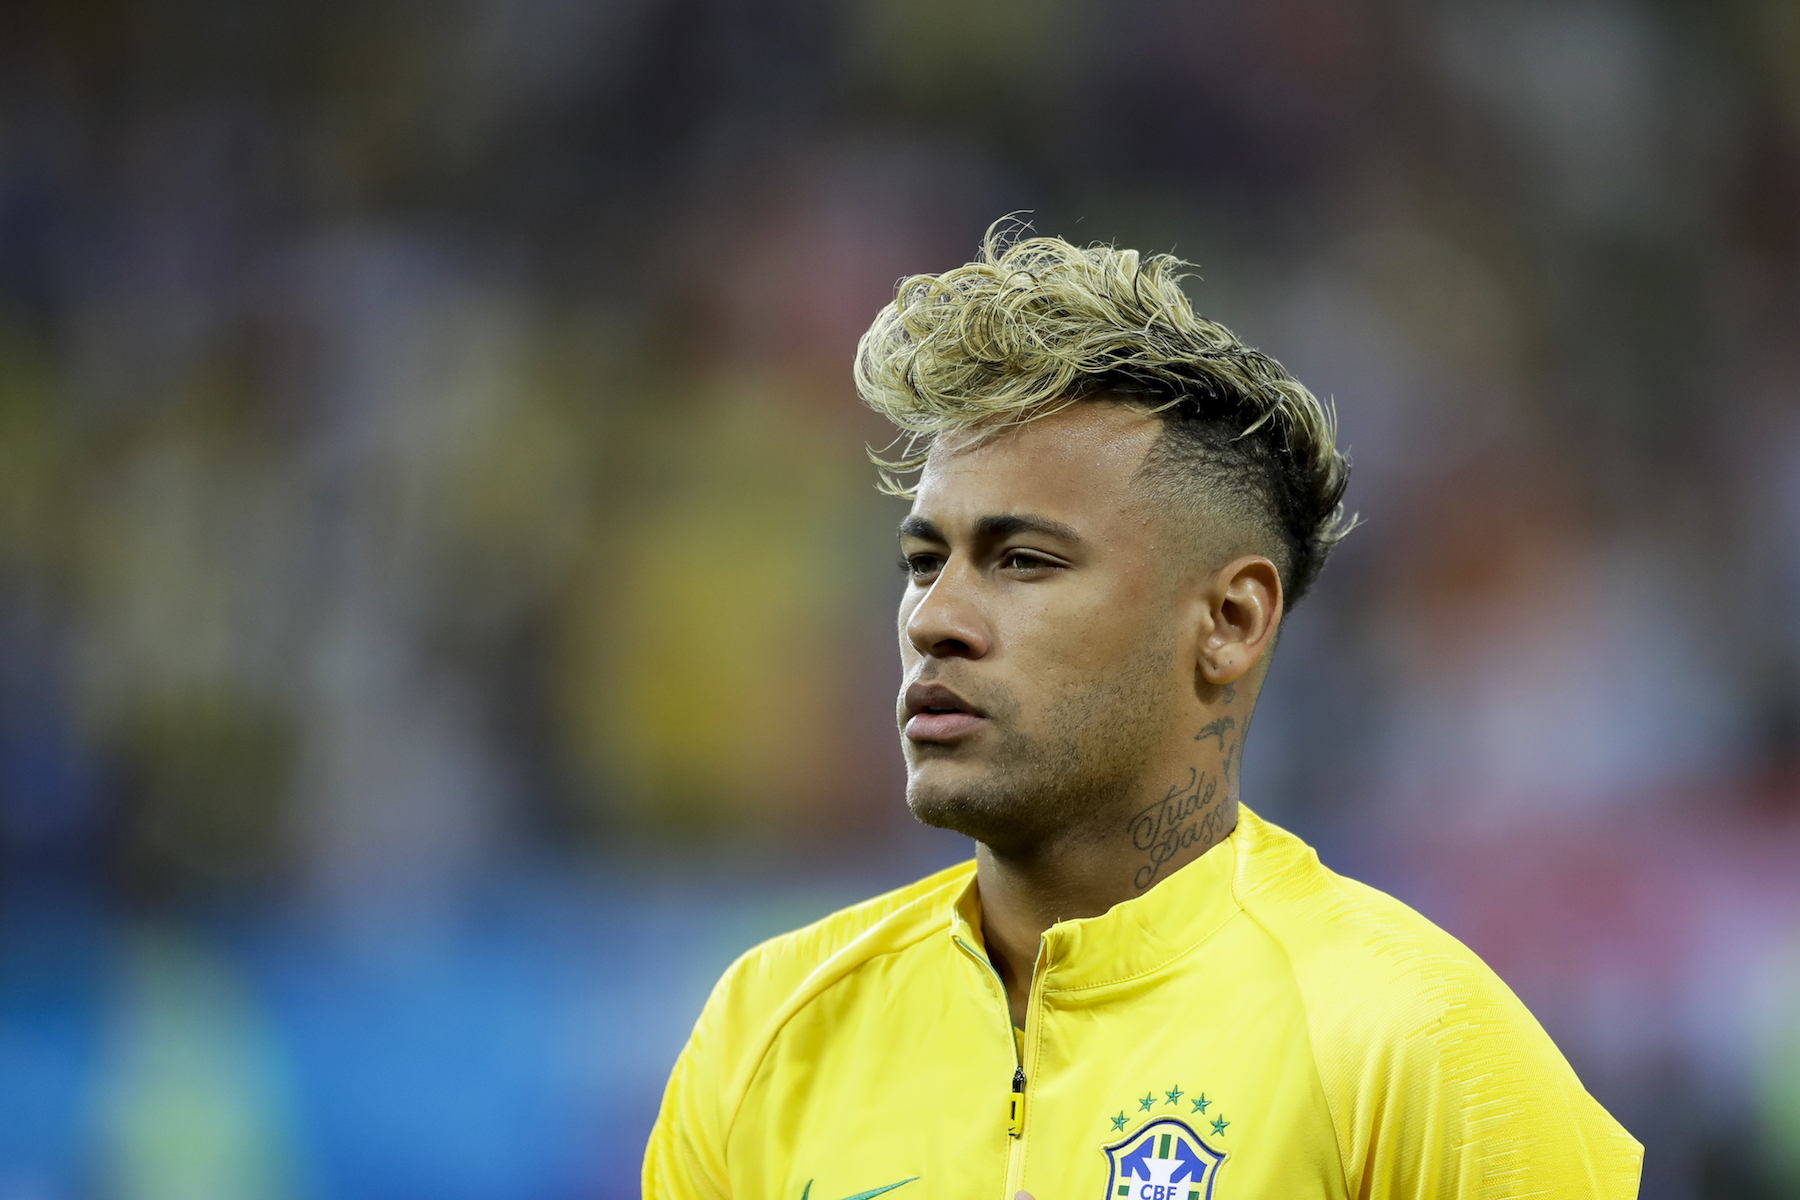 "<div class=""meta image-caption""><div class=""origin-logo origin-image ap""><span>AP</span></div><span class=""caption-text"">Brazil's Neymar lines up prior to the group E match against Switzerland at the 2018 soccer World Cup in the Rostov Arena in Rostov-on-Don, Russia, Sunday, June 17, 2018. (AP Photo/Andre Penner)</span></div>"